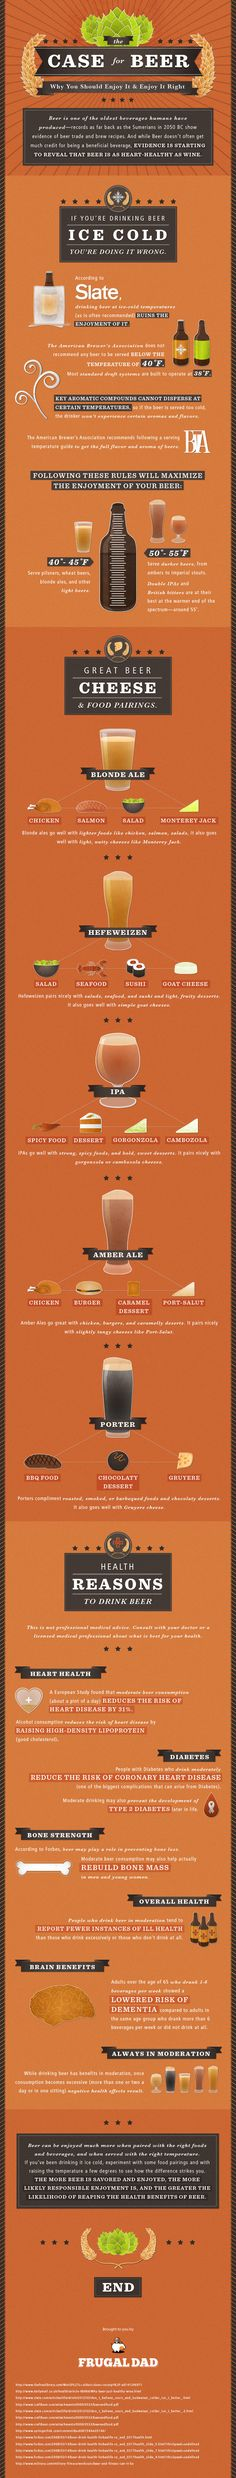 Case For Beer * infographic * Why You Should Enjoy It & Enjoy It Right